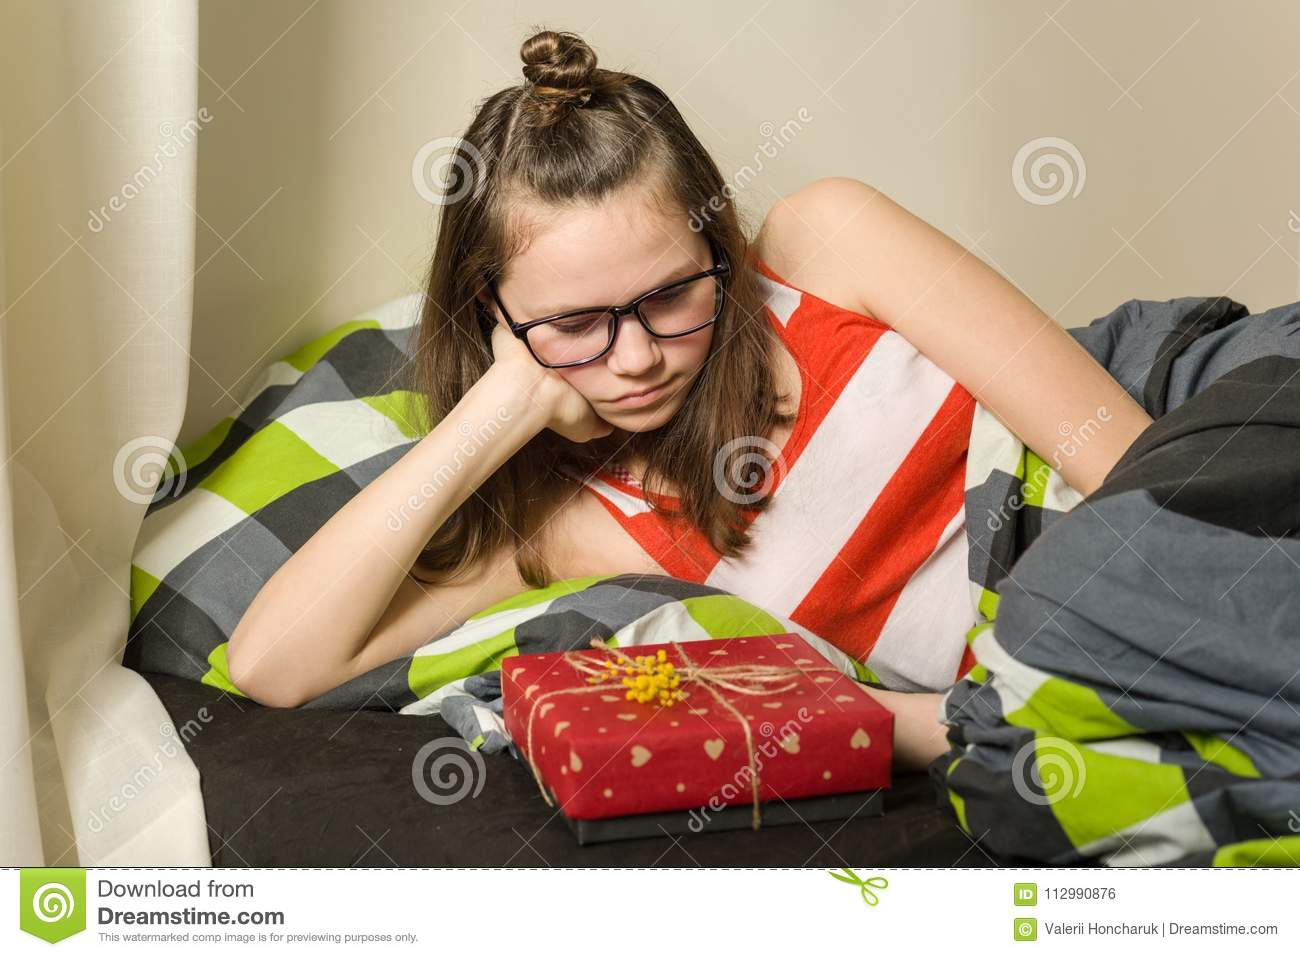 Sad disappointed teen girl looking at gift sitting in bed at home